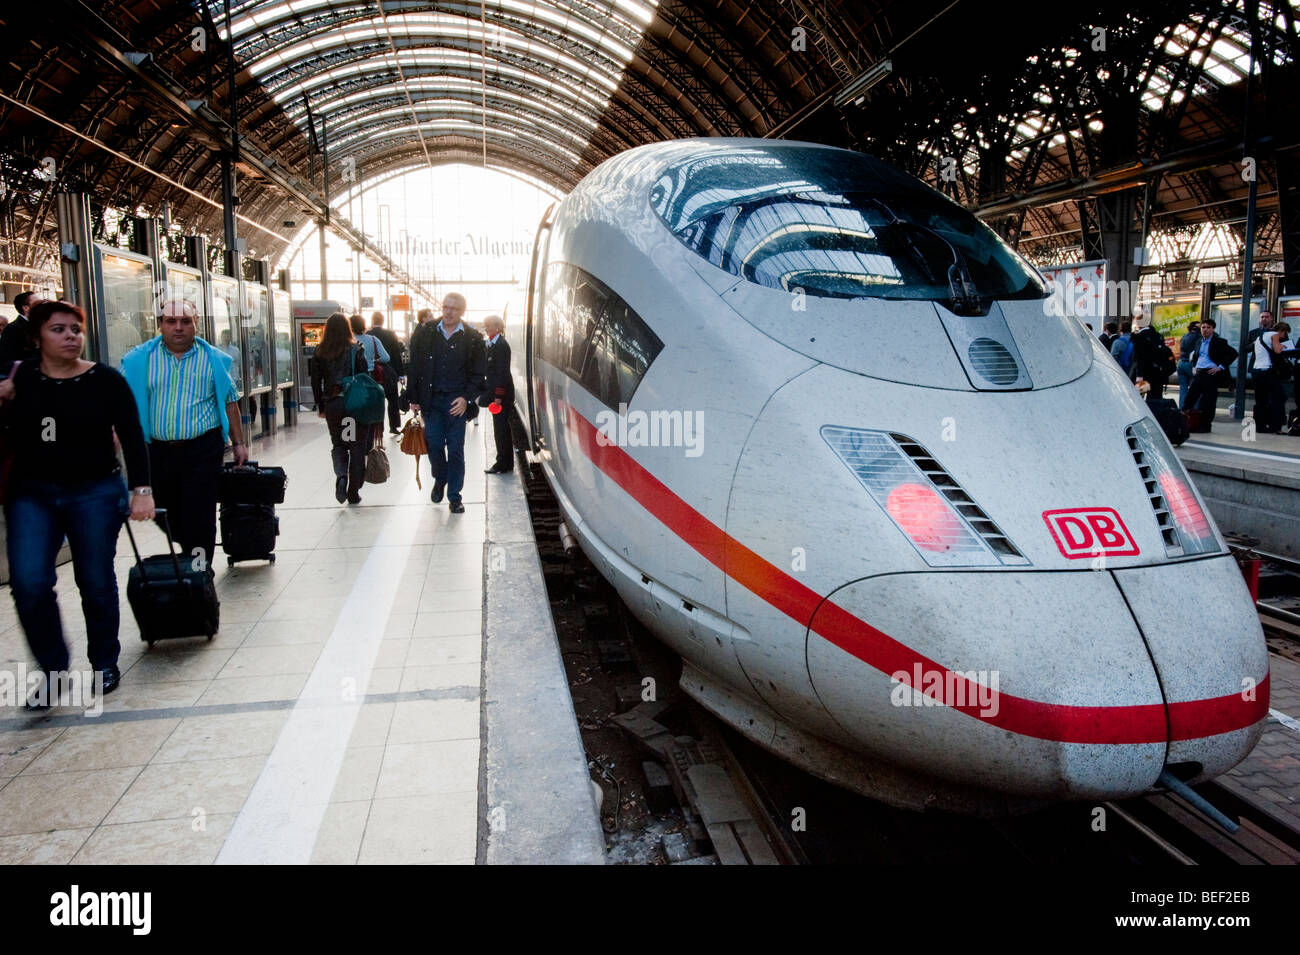 Inter city ICE train at platform at Frankfurt railway station - Stock Image